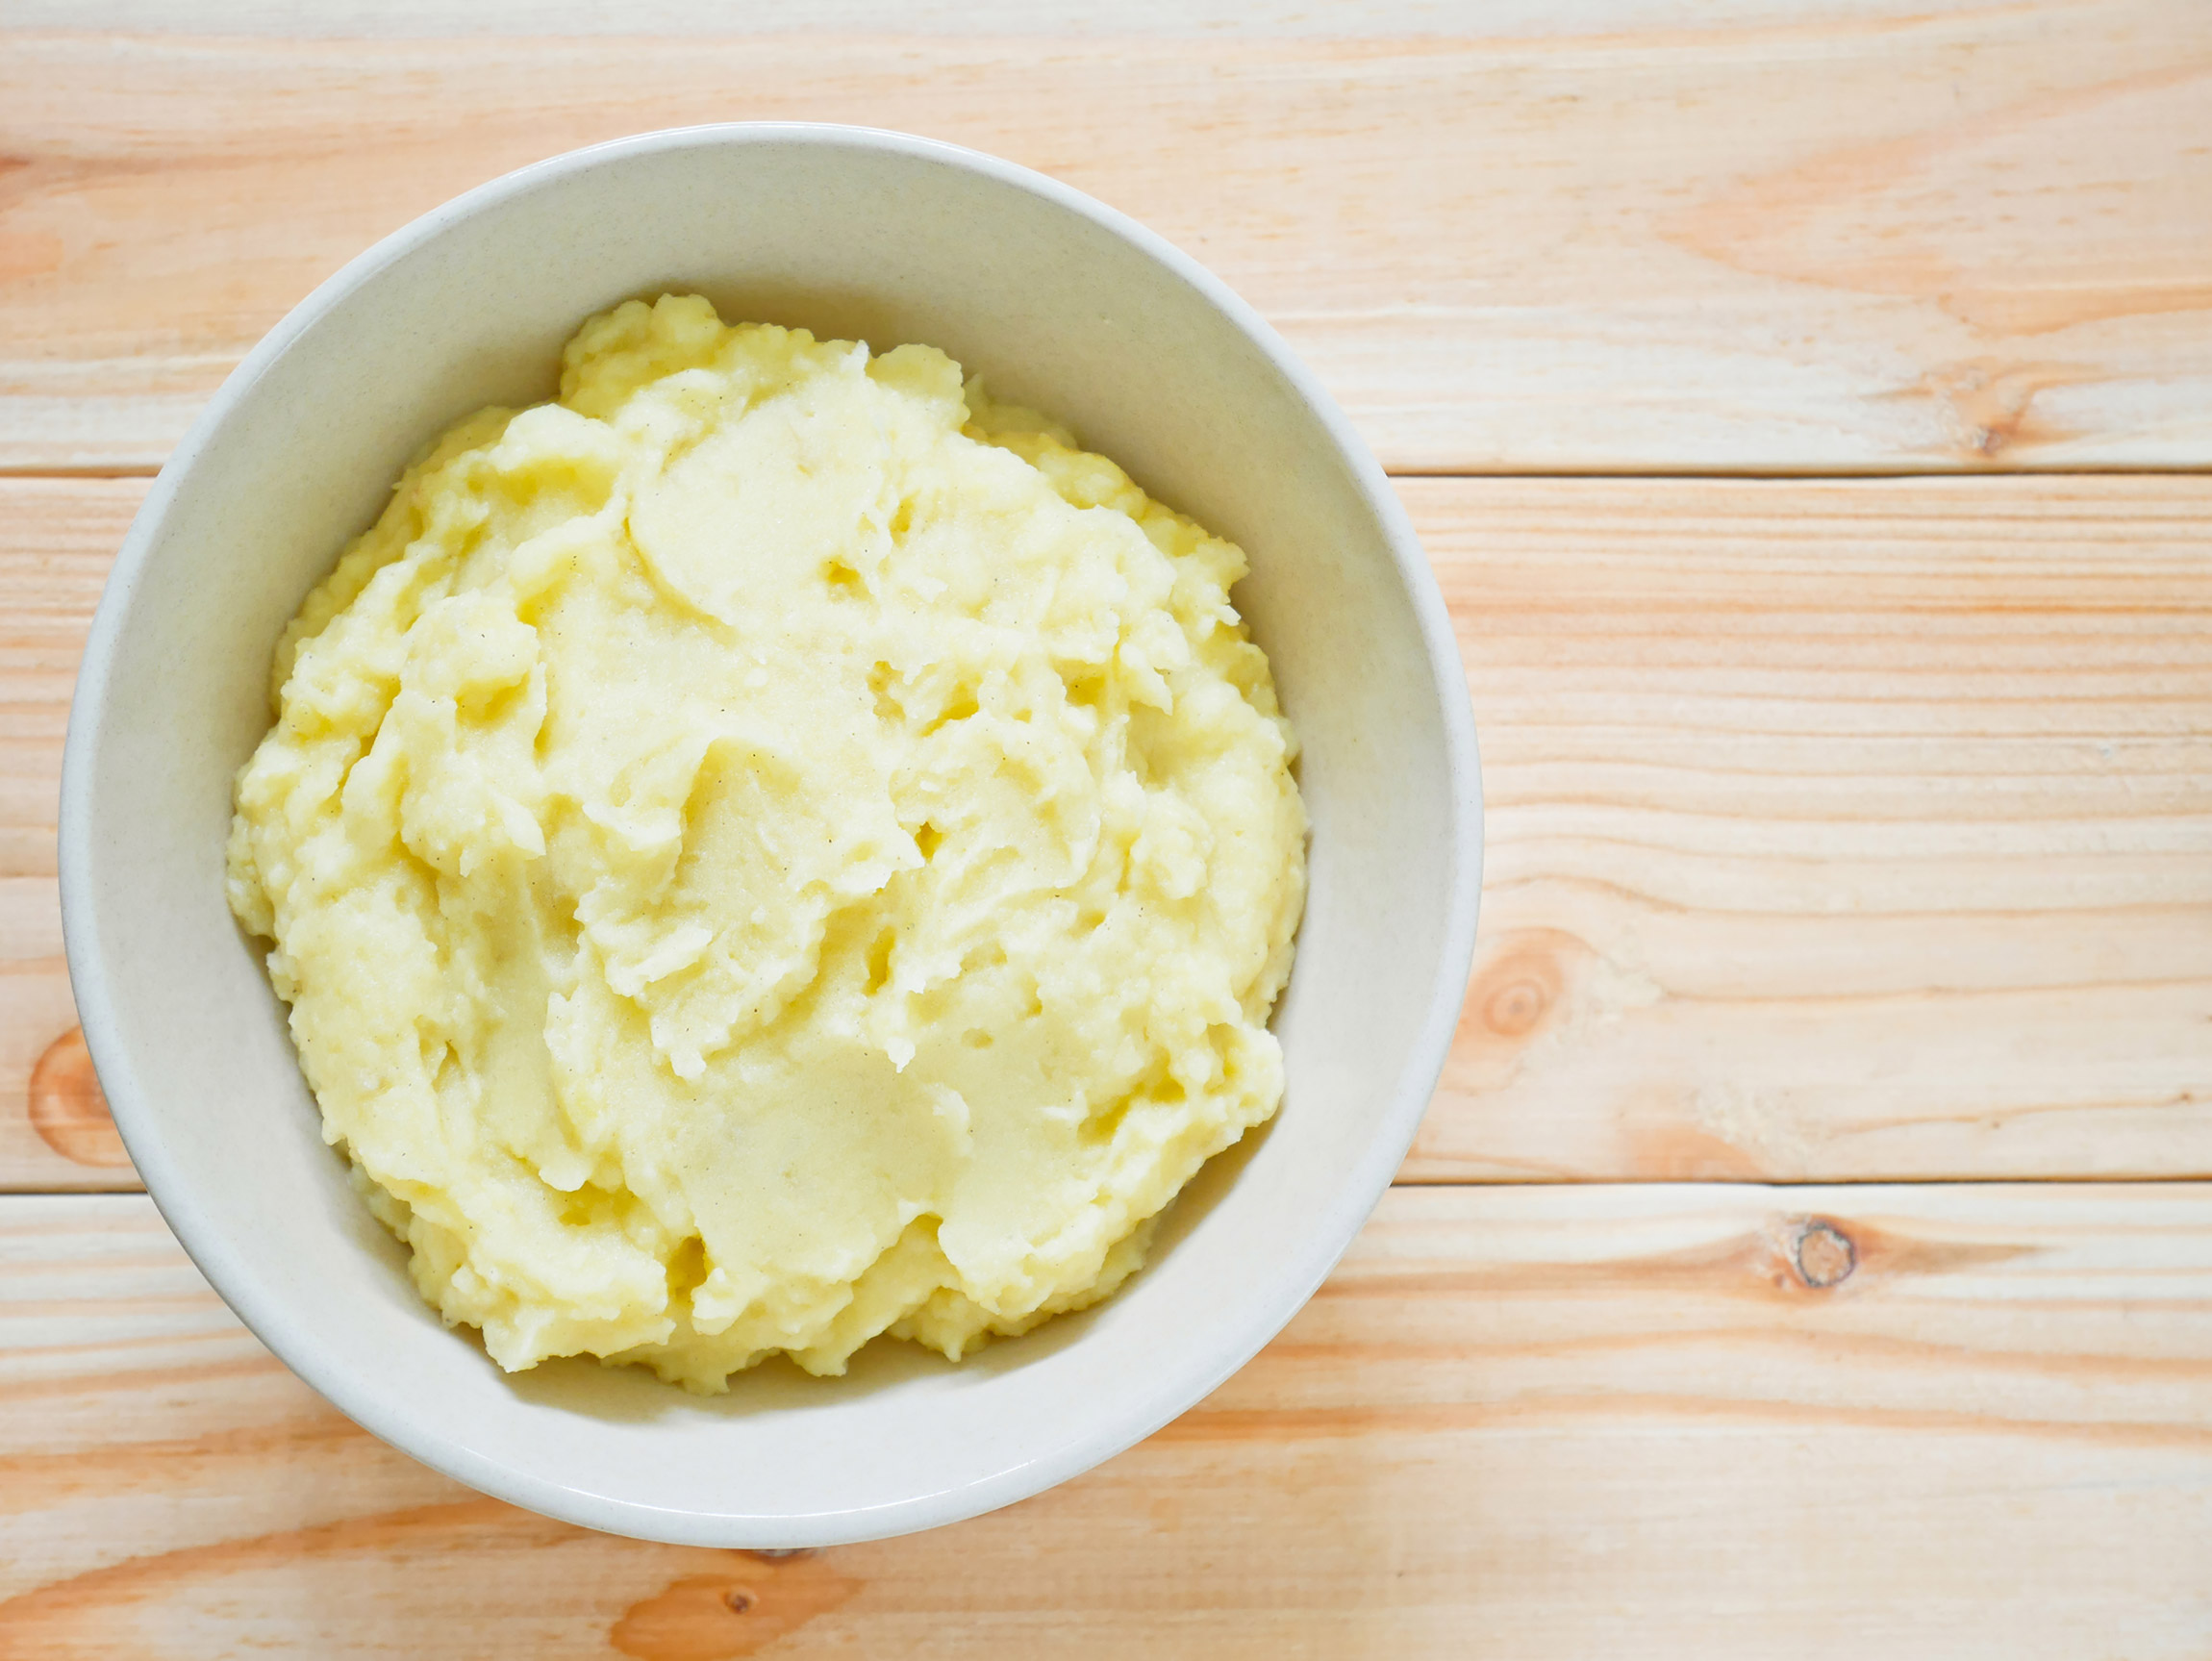 Healthy holiday food swaps: mashed potatoes